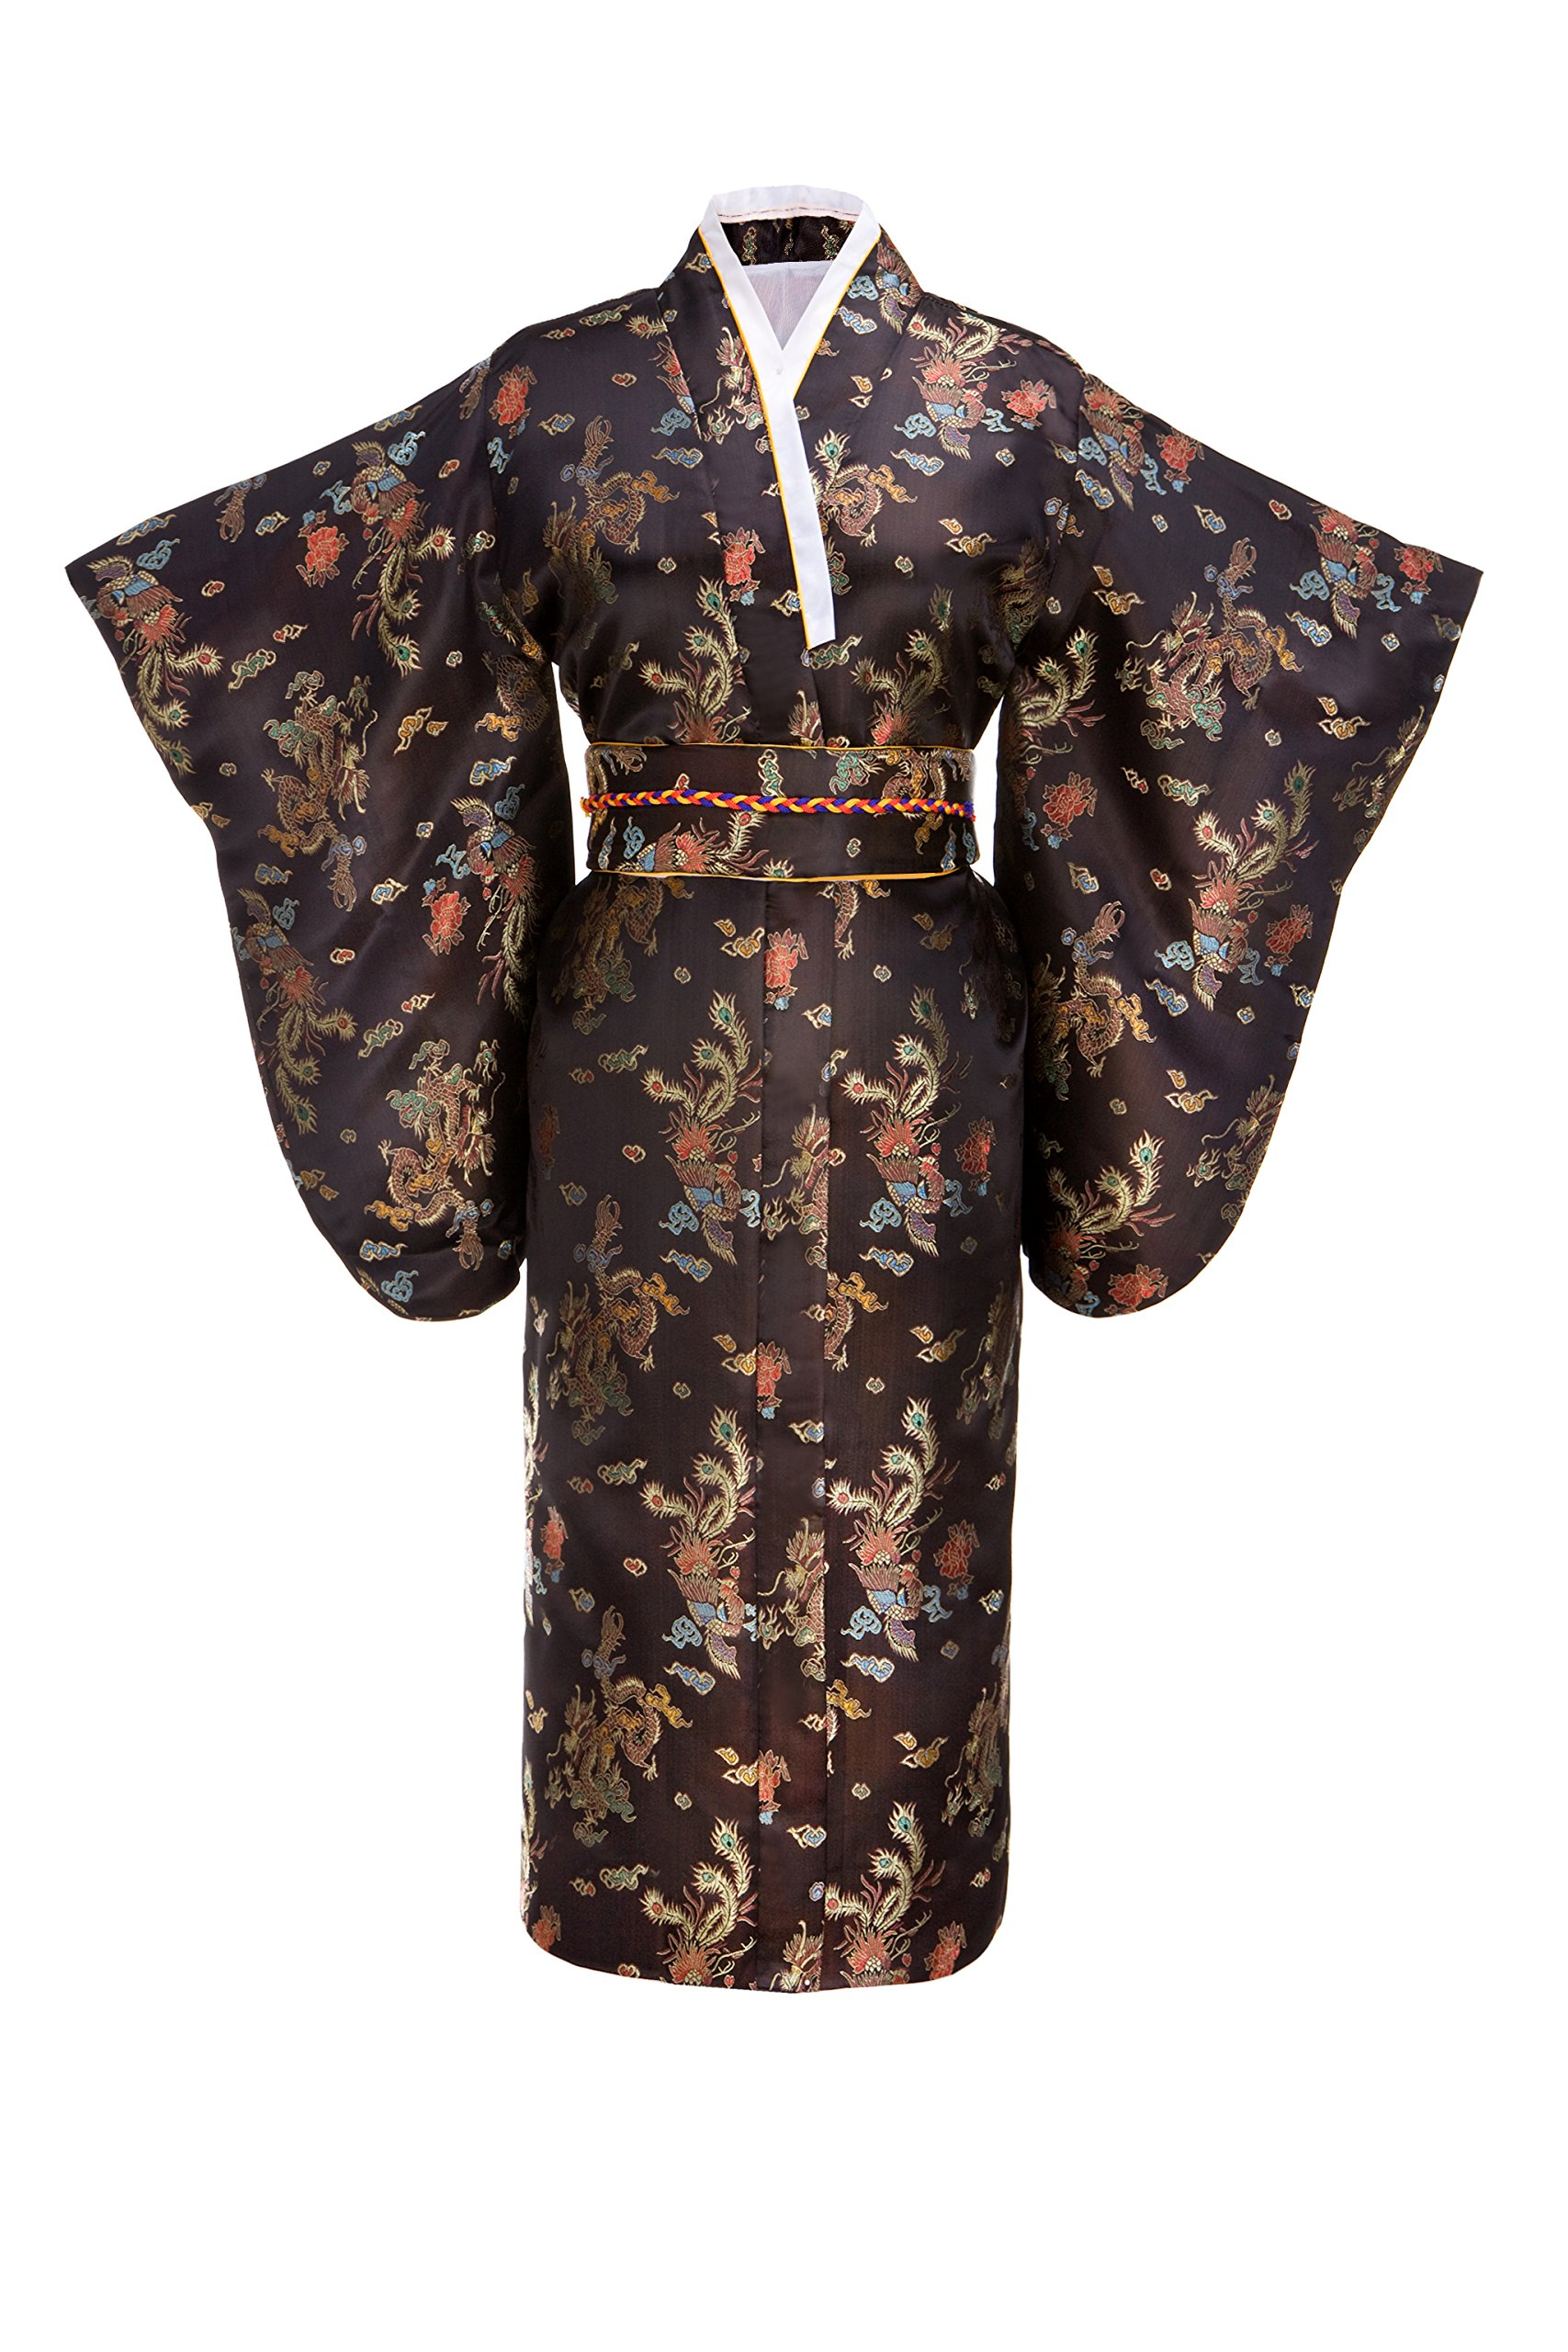 Joy Bridalc Women's Kimono Robe Japanese Traditional Brocade Cosplay Costume,Black Dragon